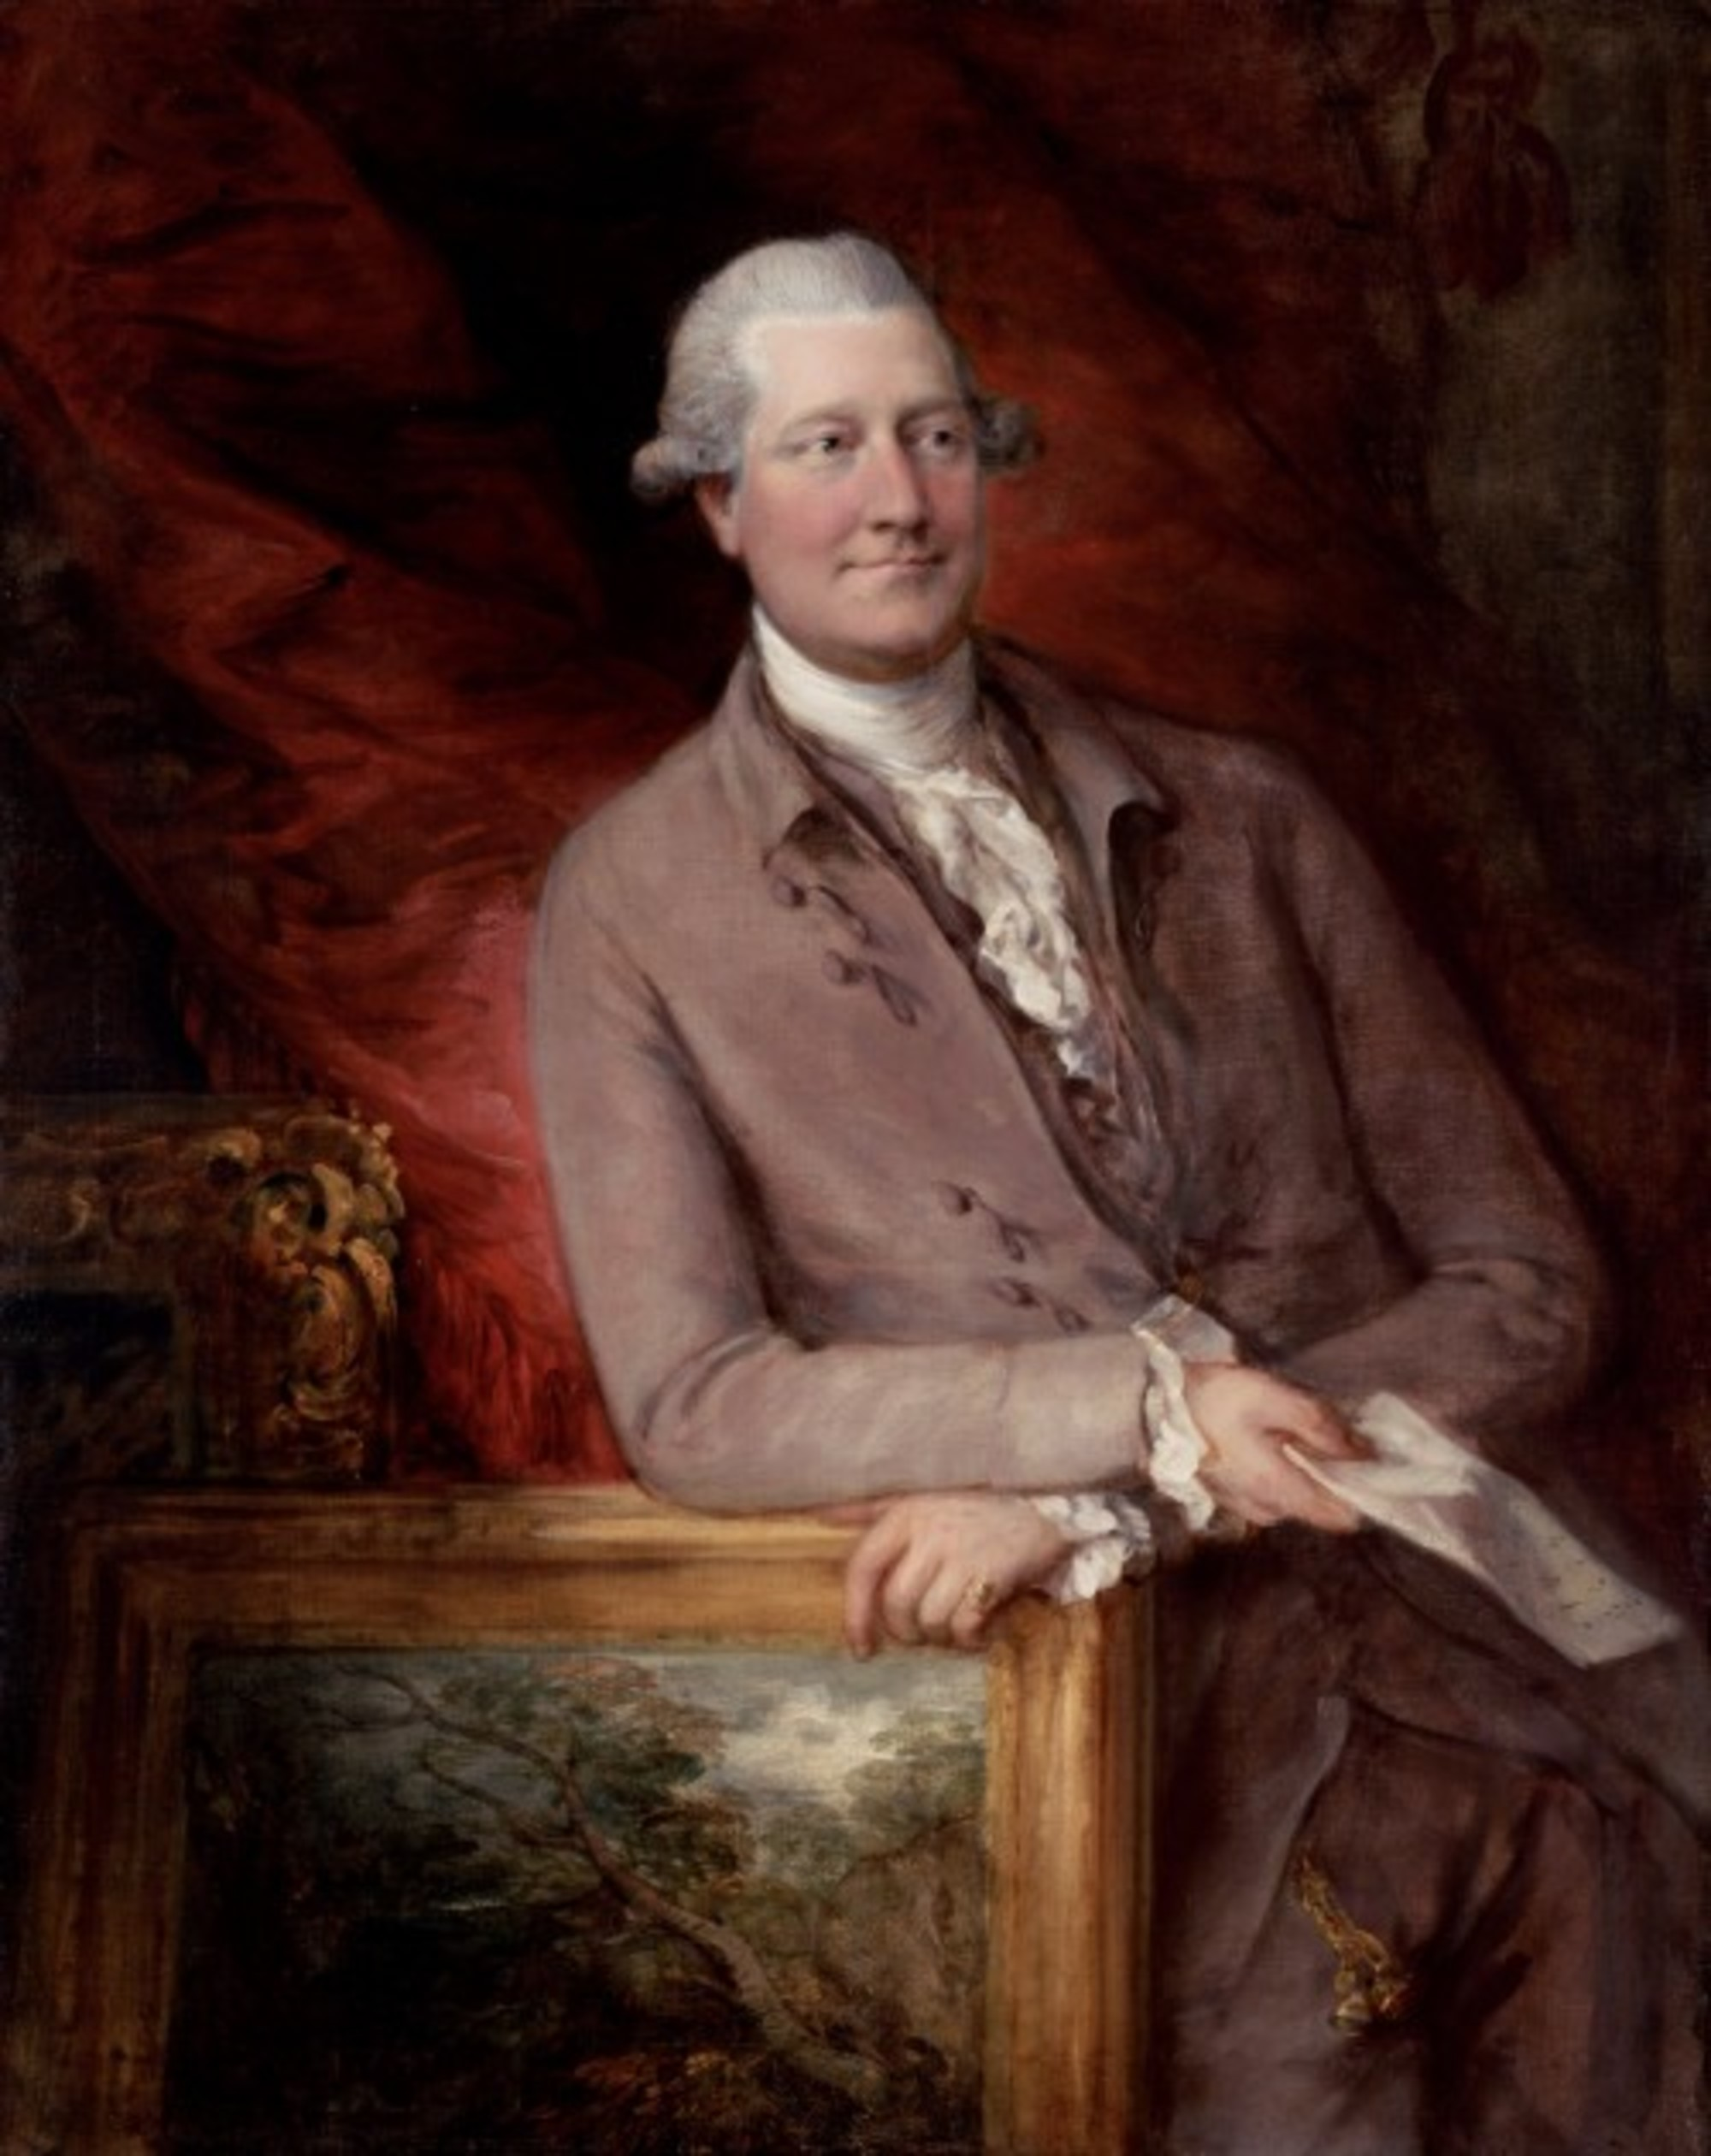 Thomas_Gainsborough_English_-_Portrait_of_James_Christie_1730_-_1803_-_Google_Art_Project.jpg